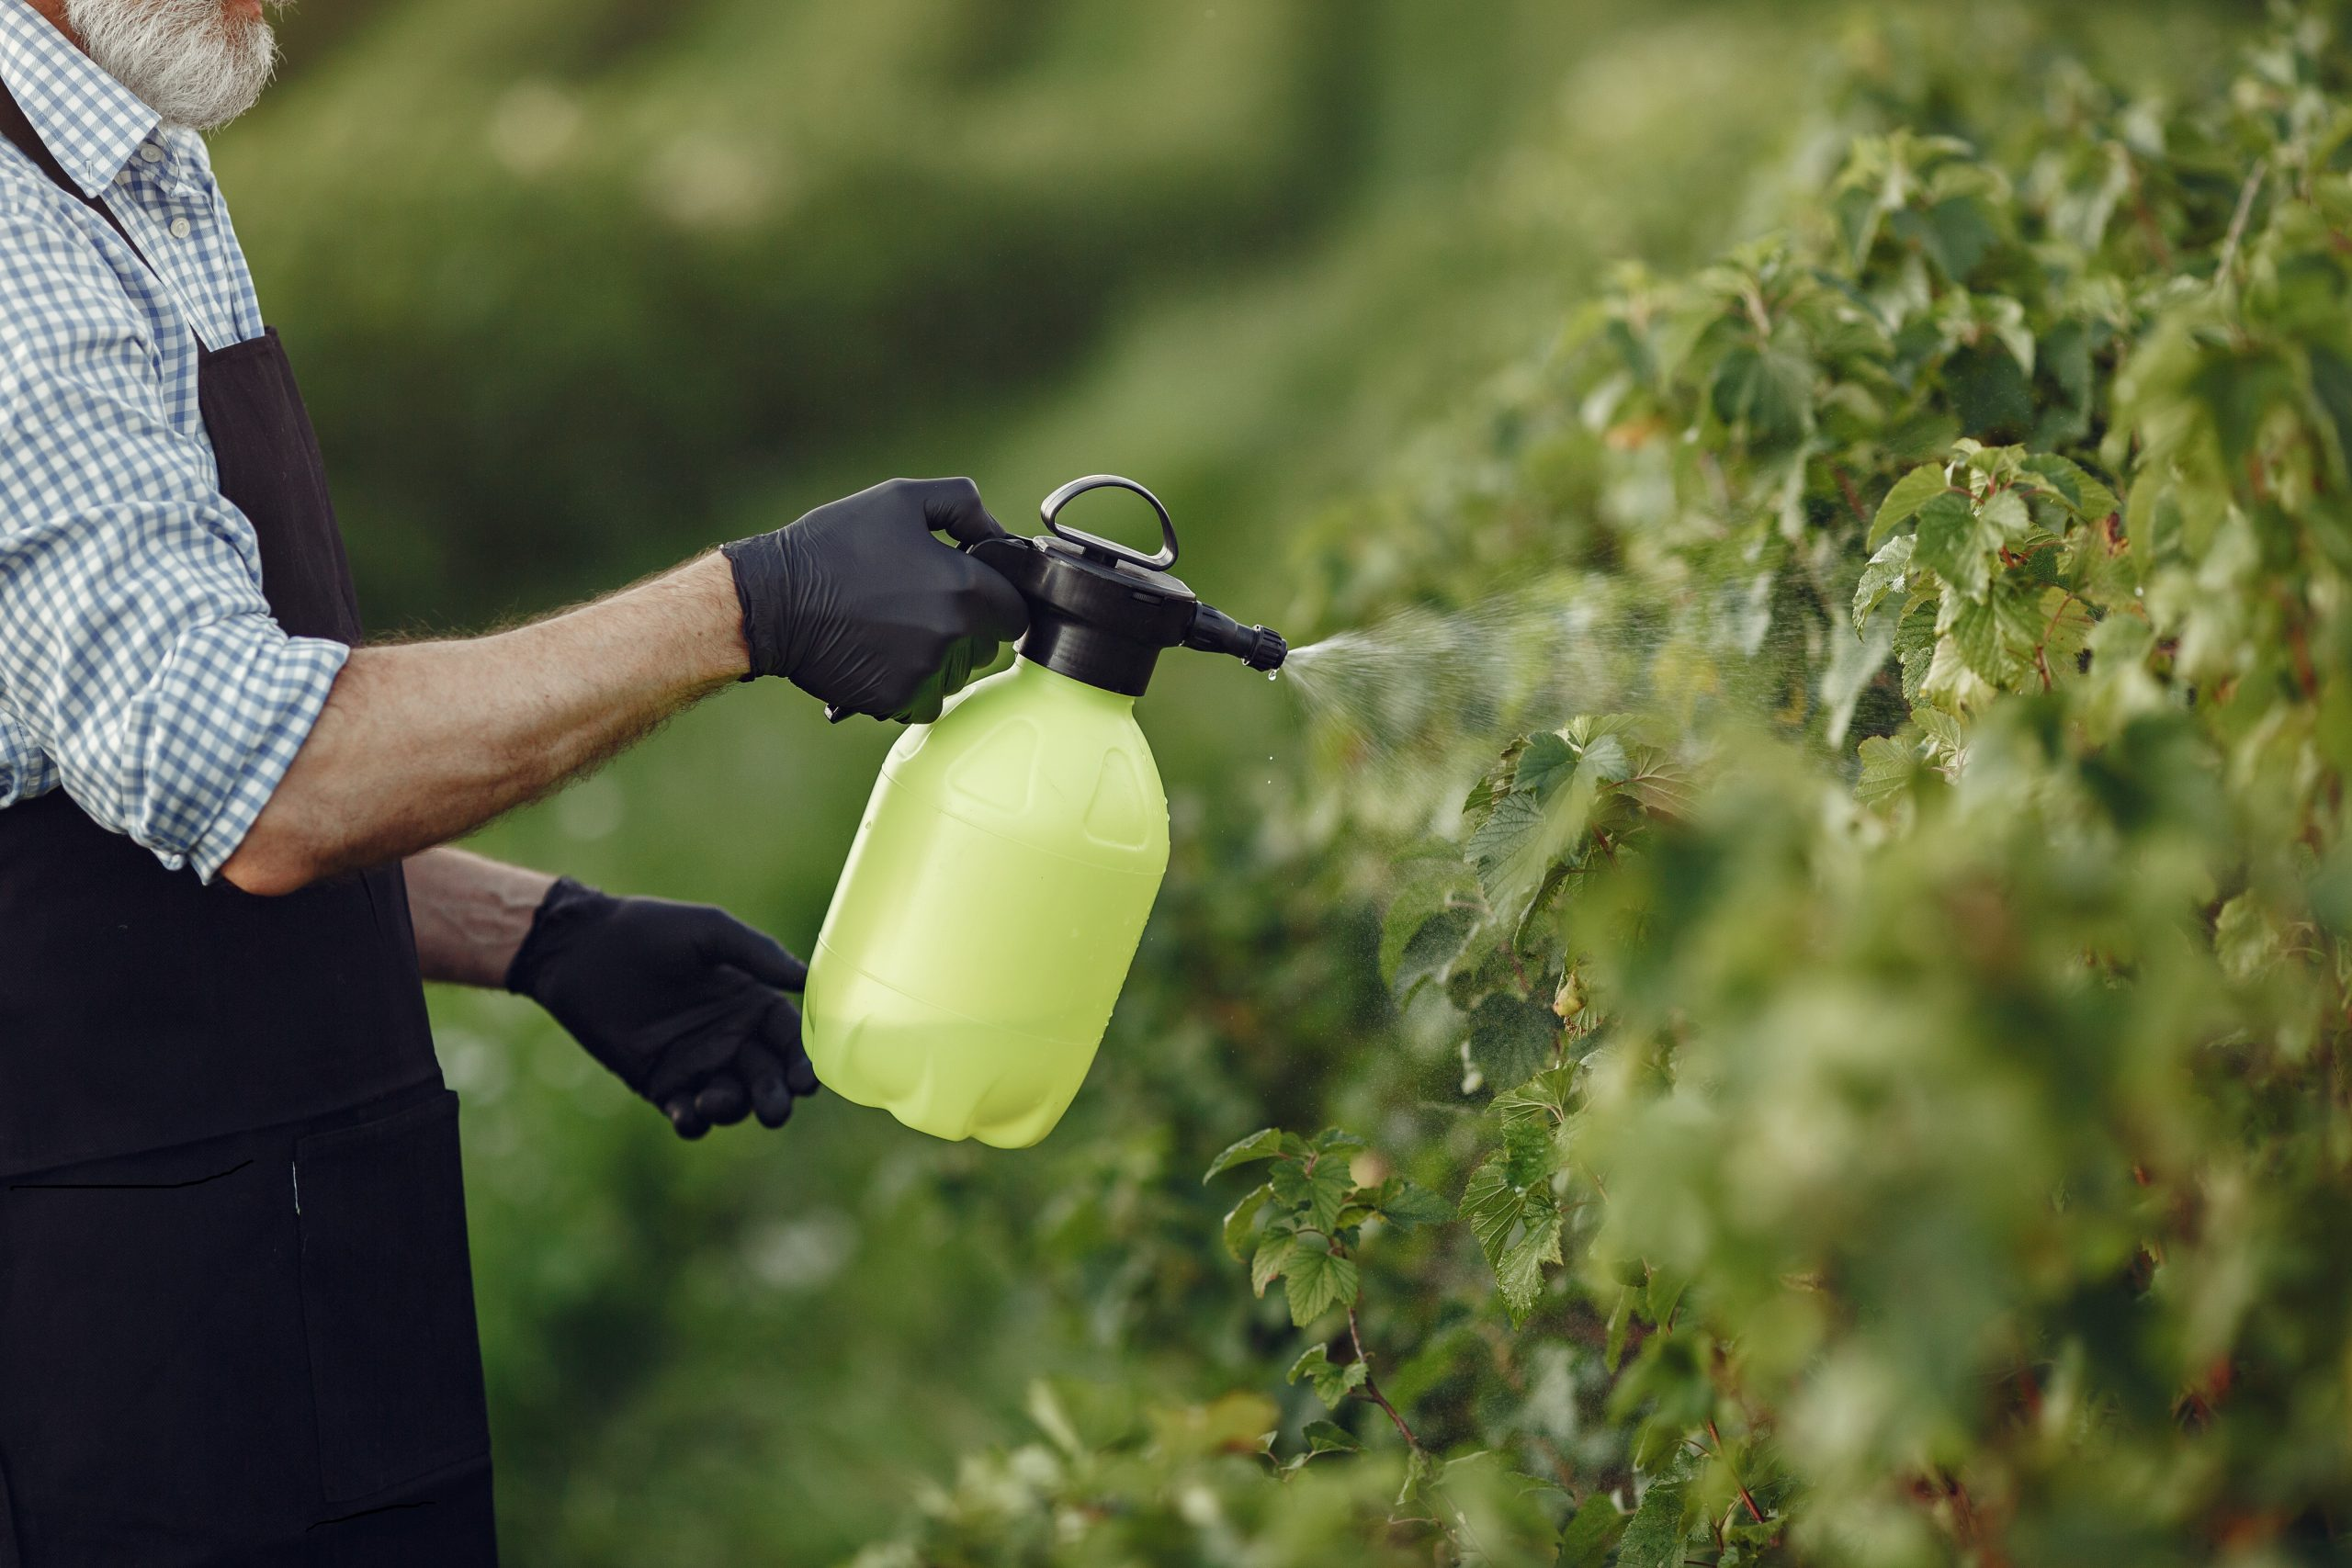 Grape Pest Control – Get Those Buggers!